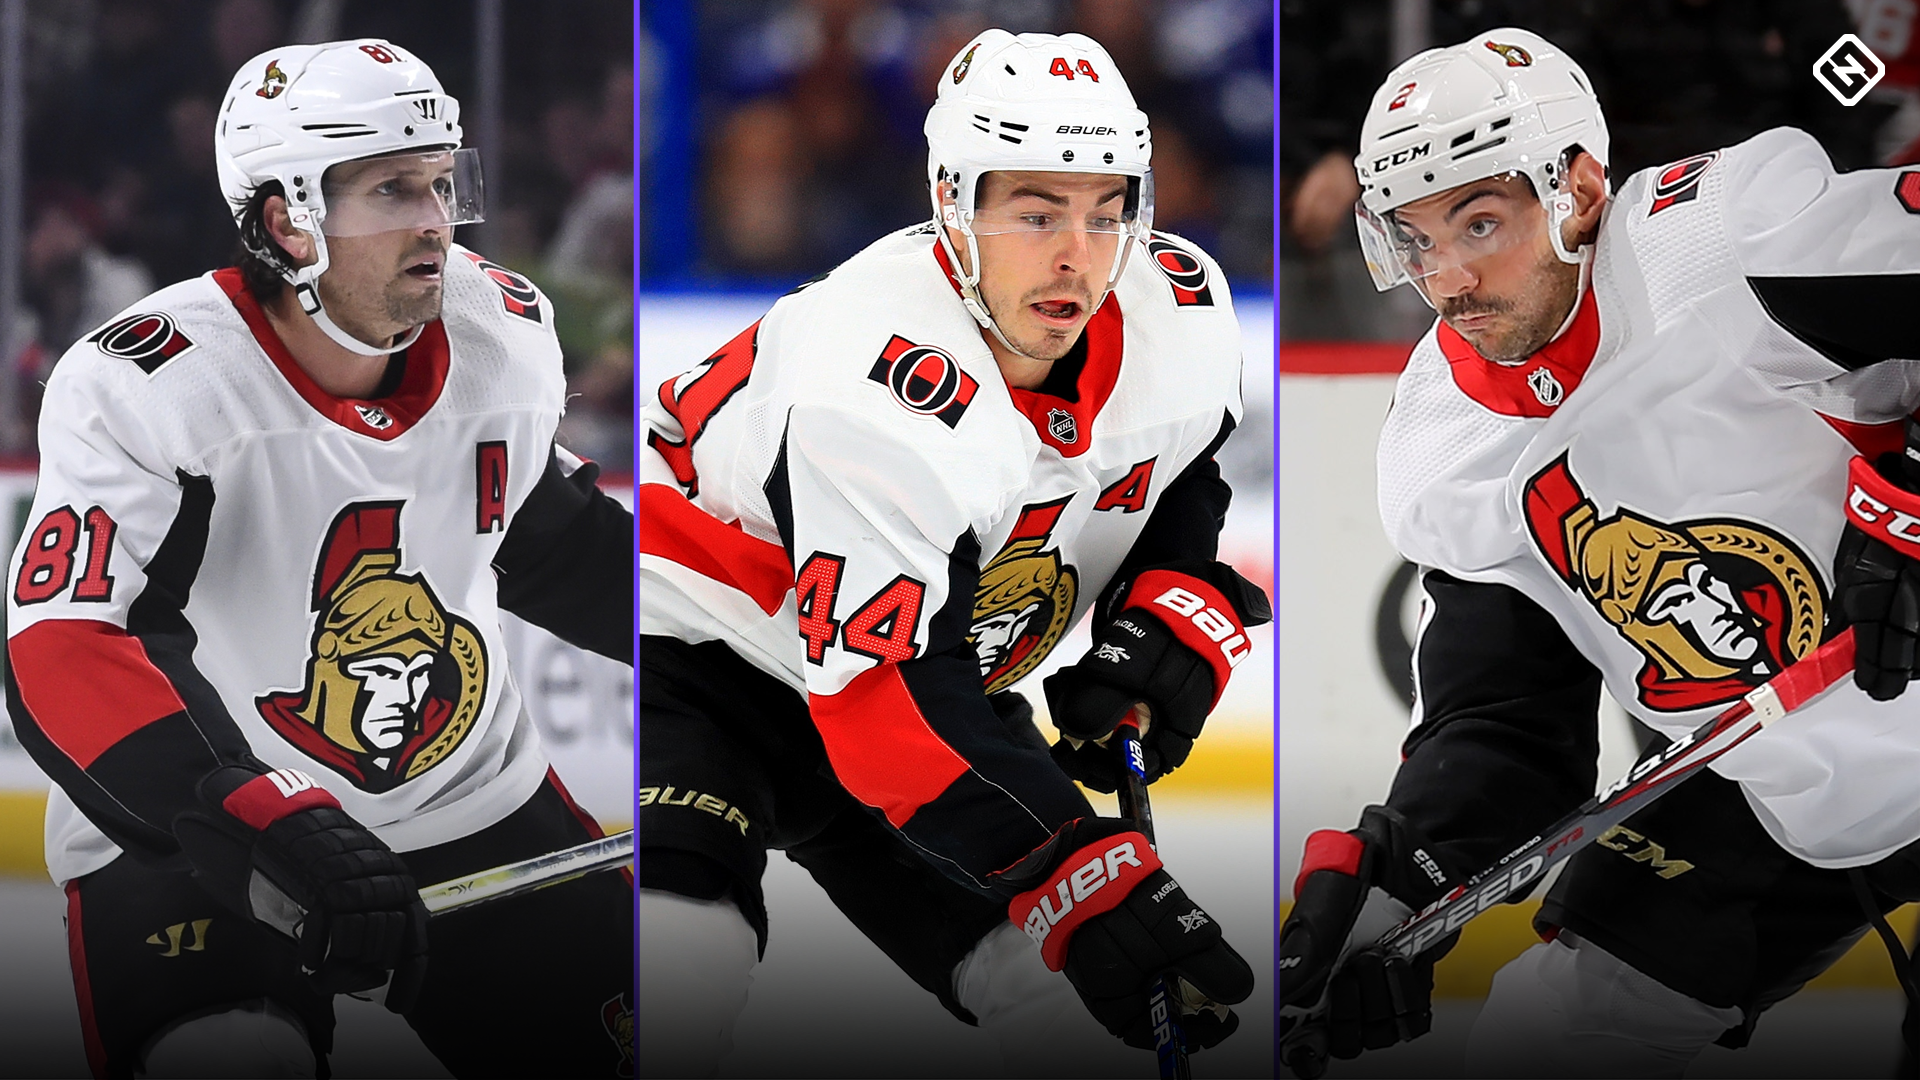 Ottawa Senators should steer clear of full-sale strategy at NHL trade deadline, retain Jean-Gabriel Pageau